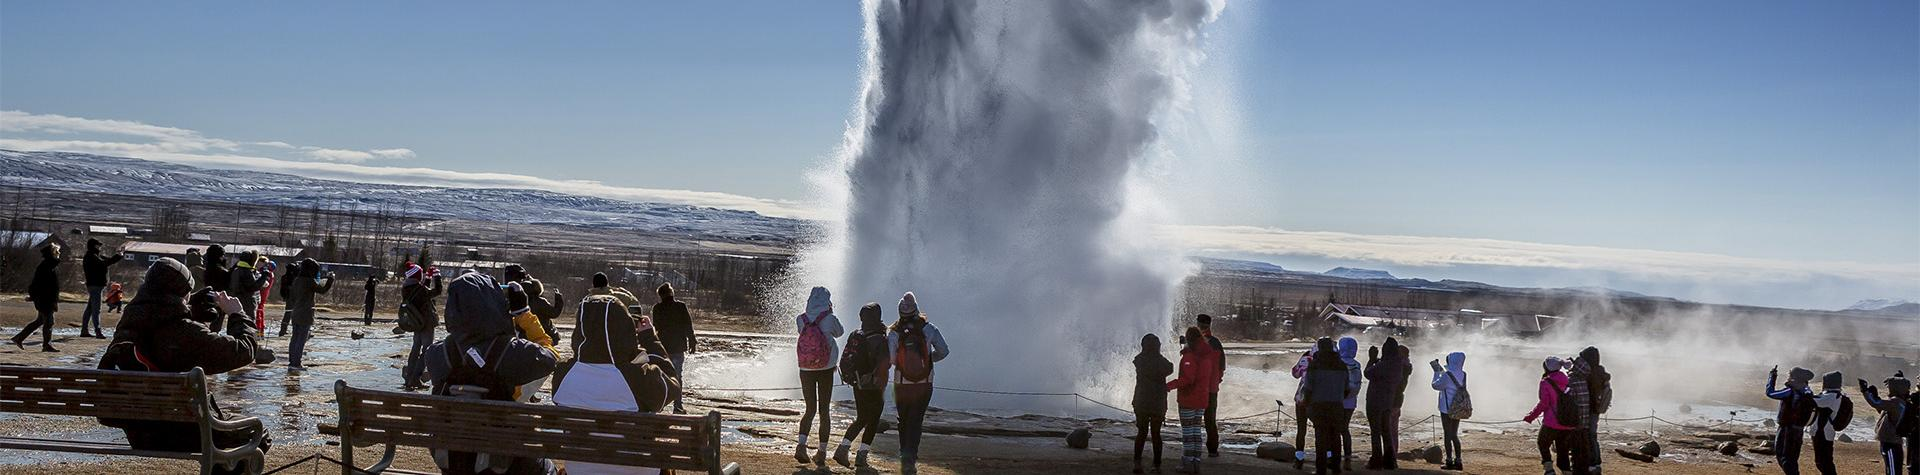 Iceland guided tours: Strokkur erupting, geothermal area Haukadalur Valley, South Iceland